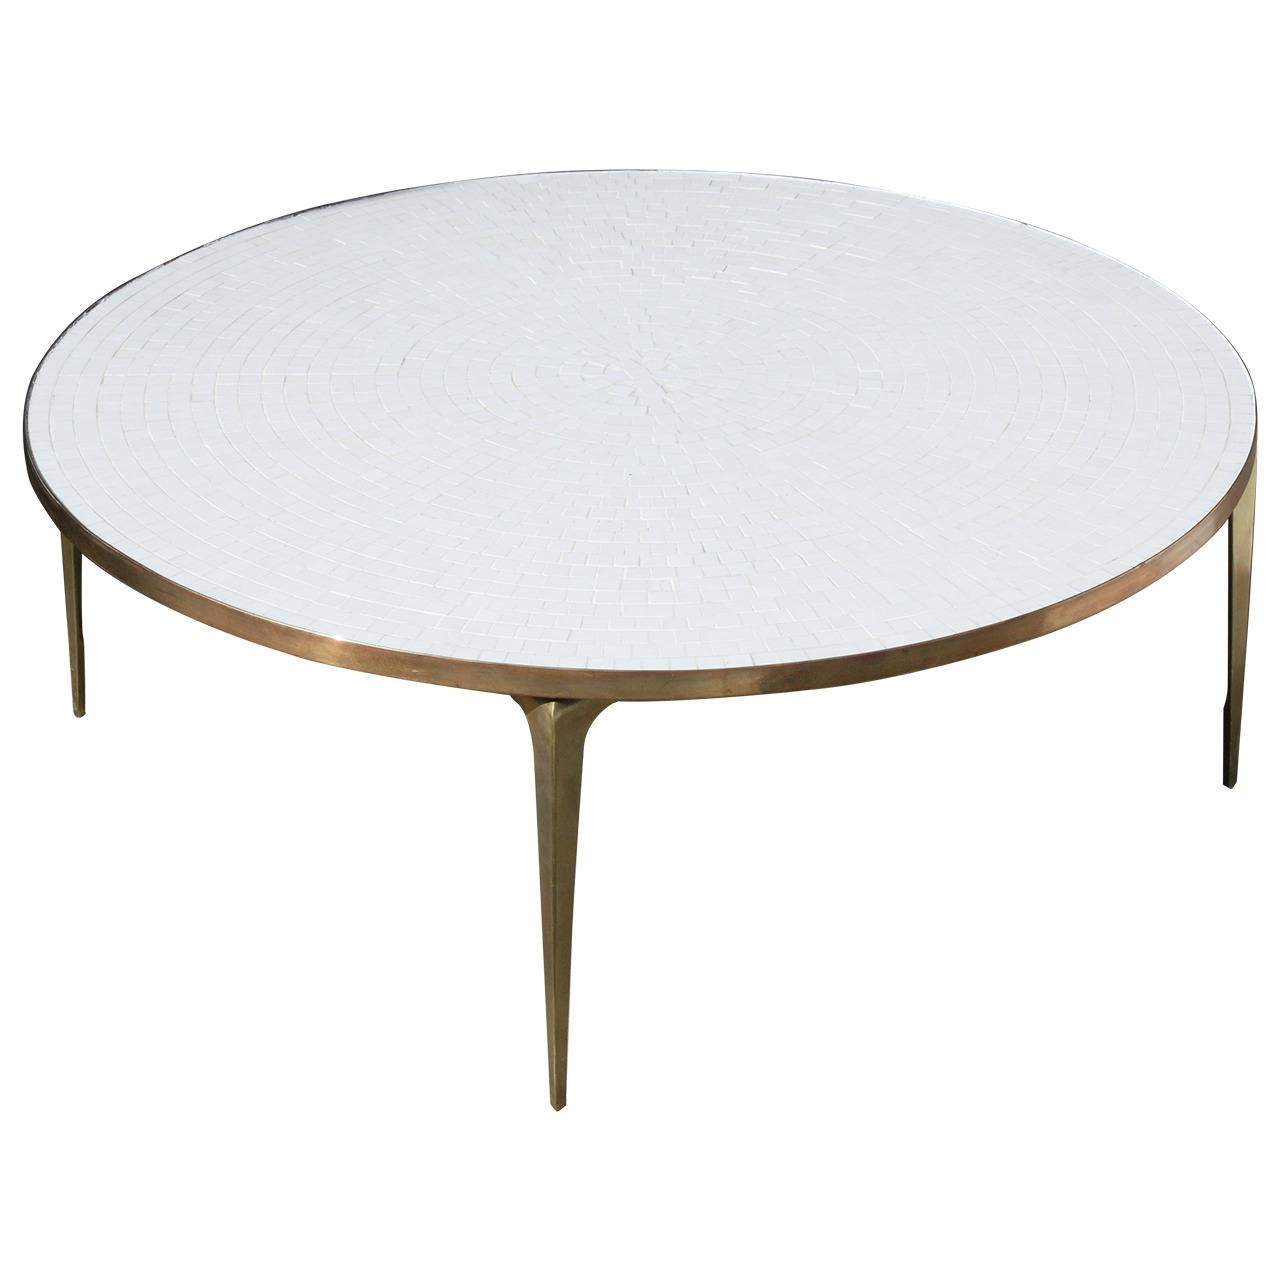 round brass and white mosaic coffee table at 1stdibs. Black Bedroom Furniture Sets. Home Design Ideas